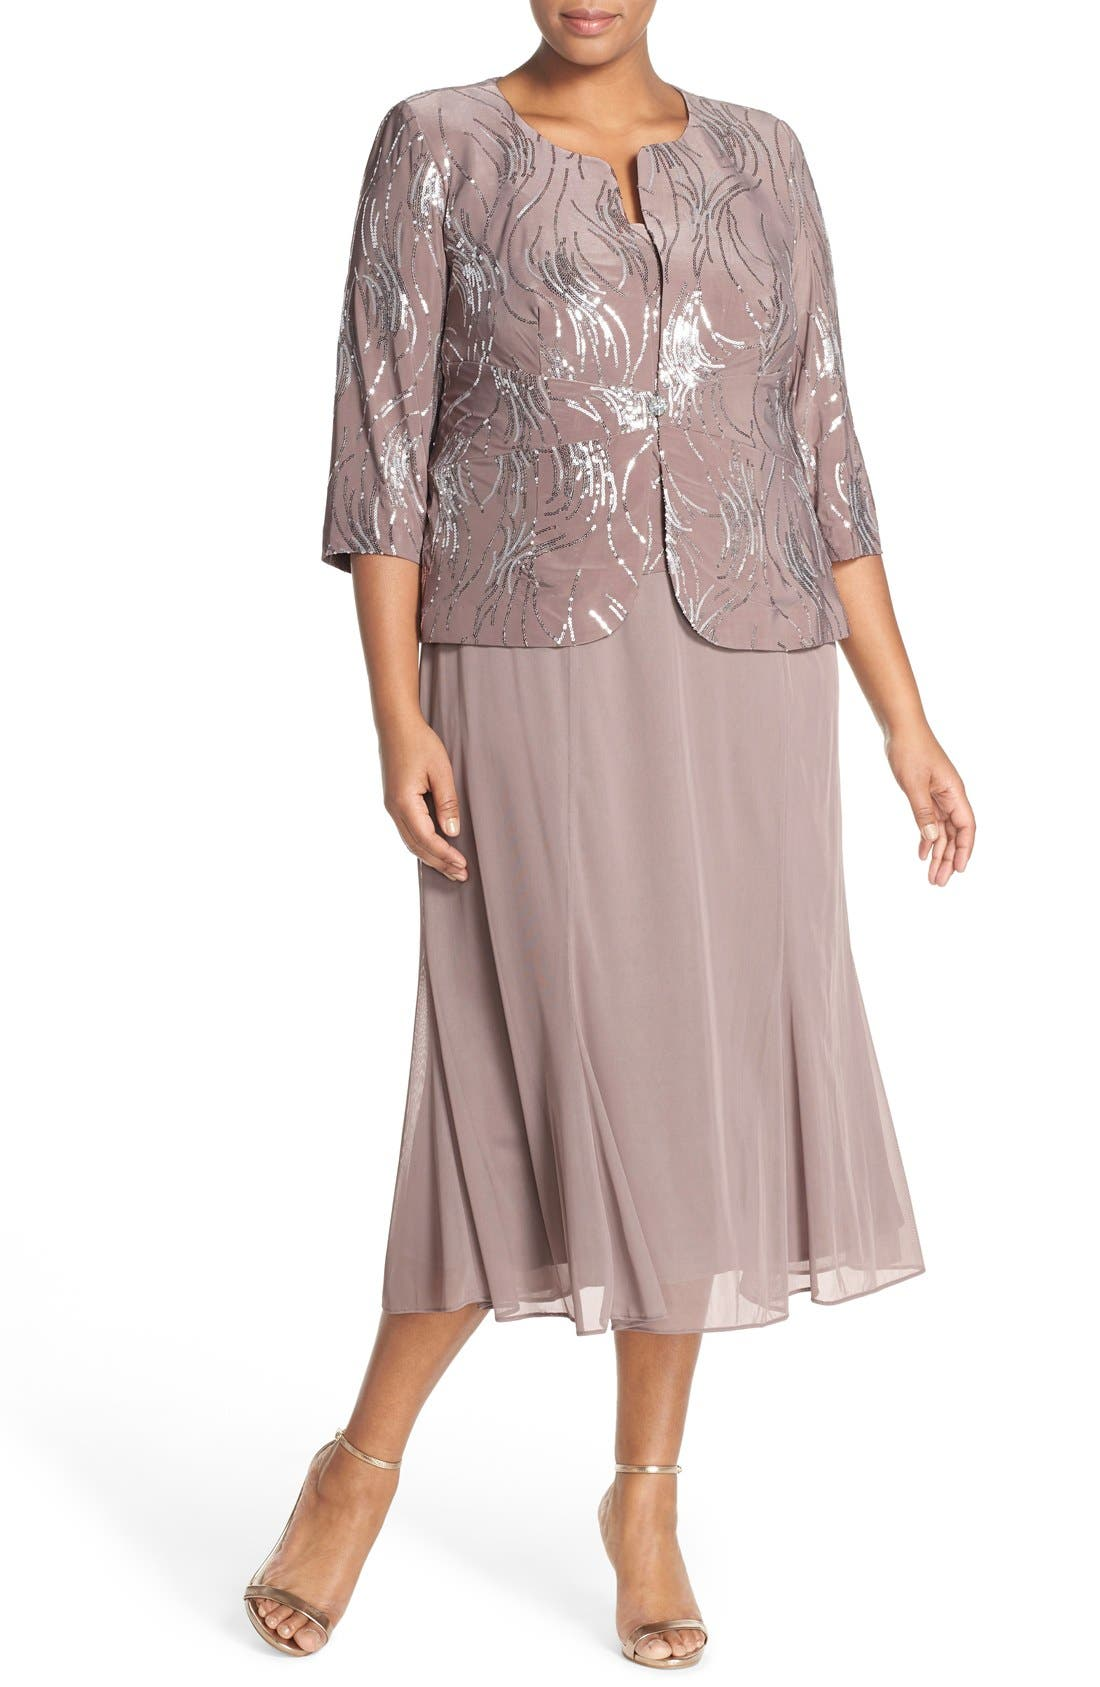 1940s Plus Size Fashion: Style Advice from 1940s to Today Plus Size Womens Alex Evenings Sequin Mock Two-Piece Dress With Jacket Size 14W - Metallic $209.00 AT vintagedancer.com